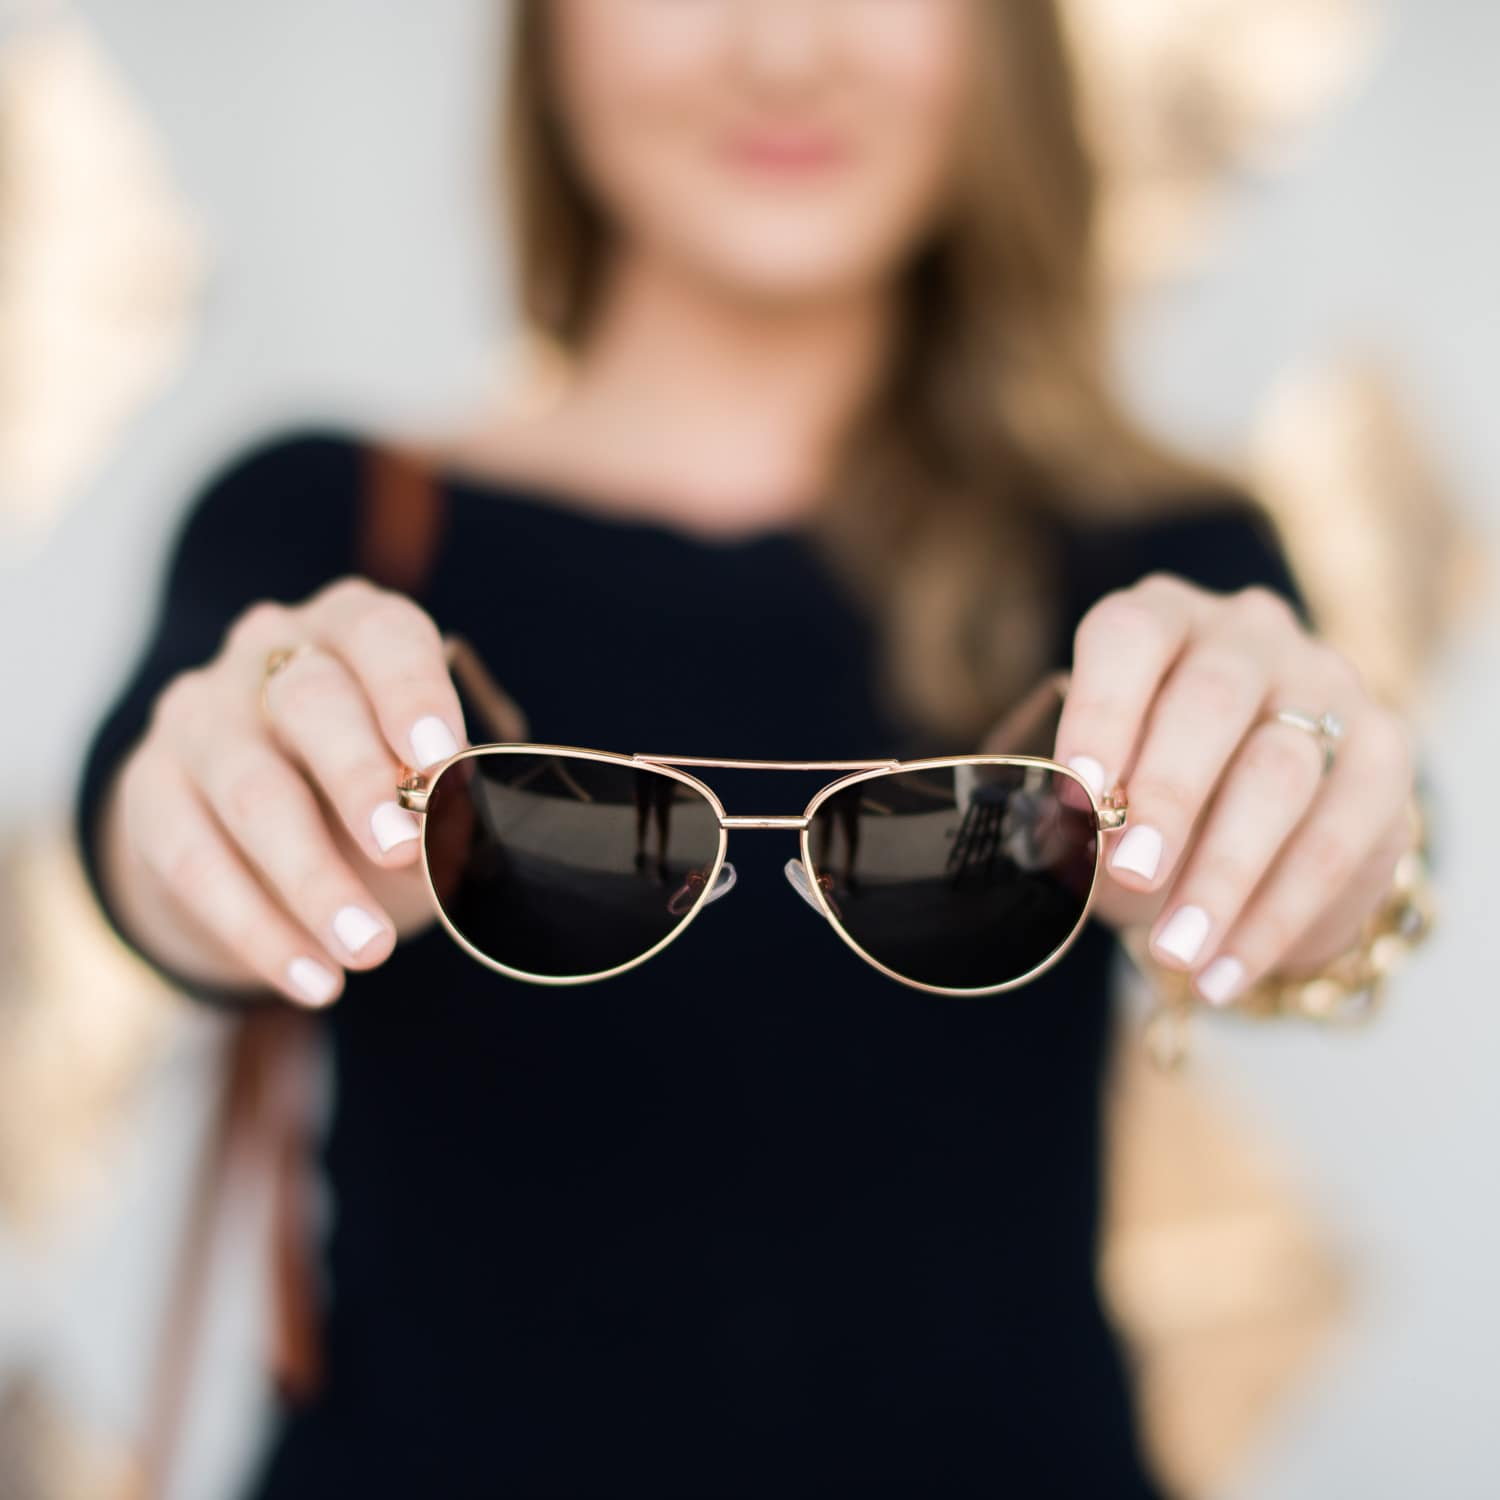 rose-gold-aviator-sunglasses-foster-grant-store-opening-florida-mall-3334